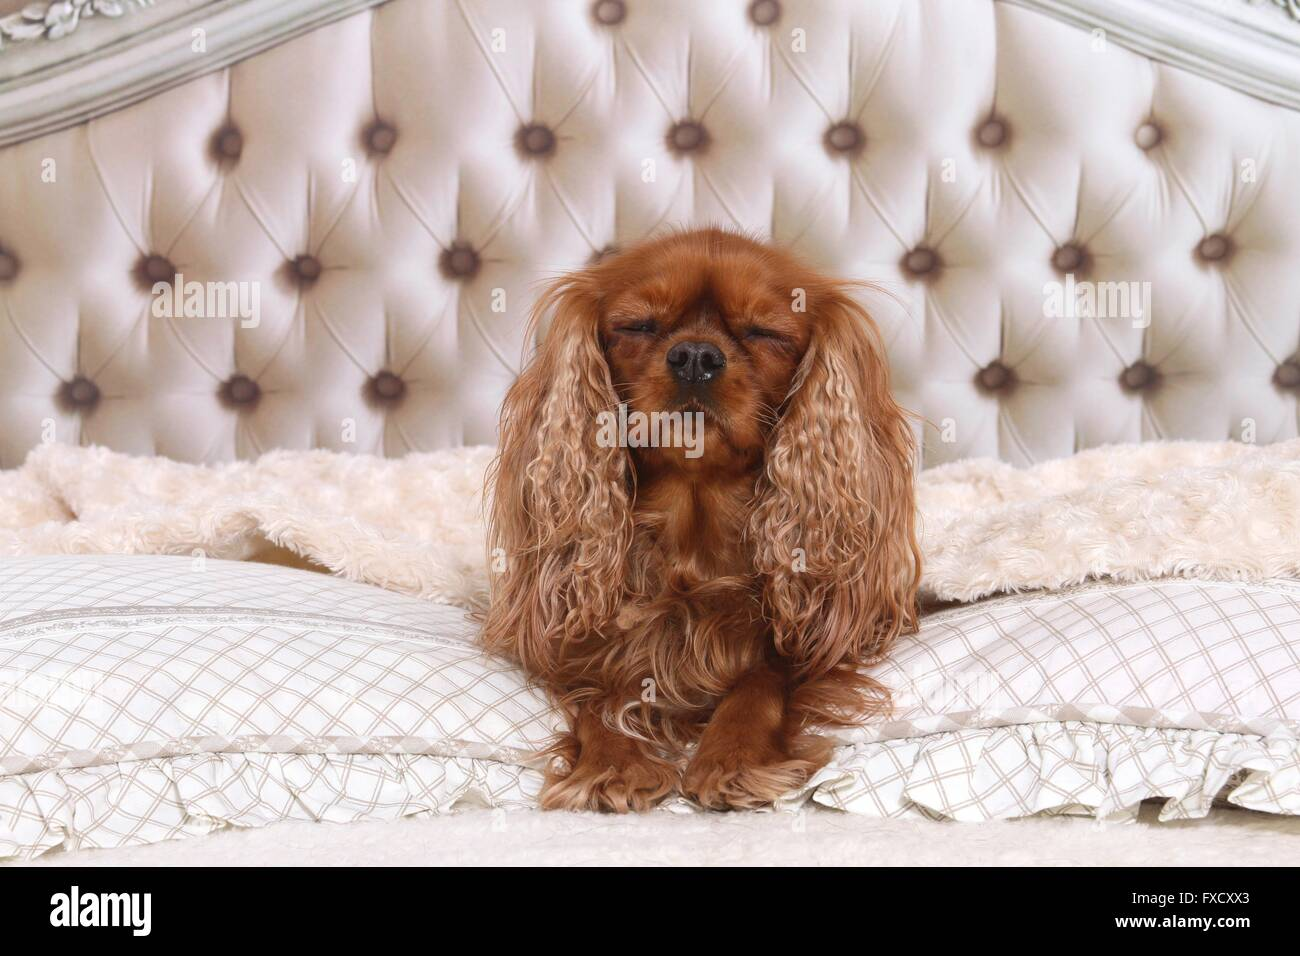 sleeping Cavalier King Charles Spaniel Stock Photo  102317435 - Alamy 0598538d74